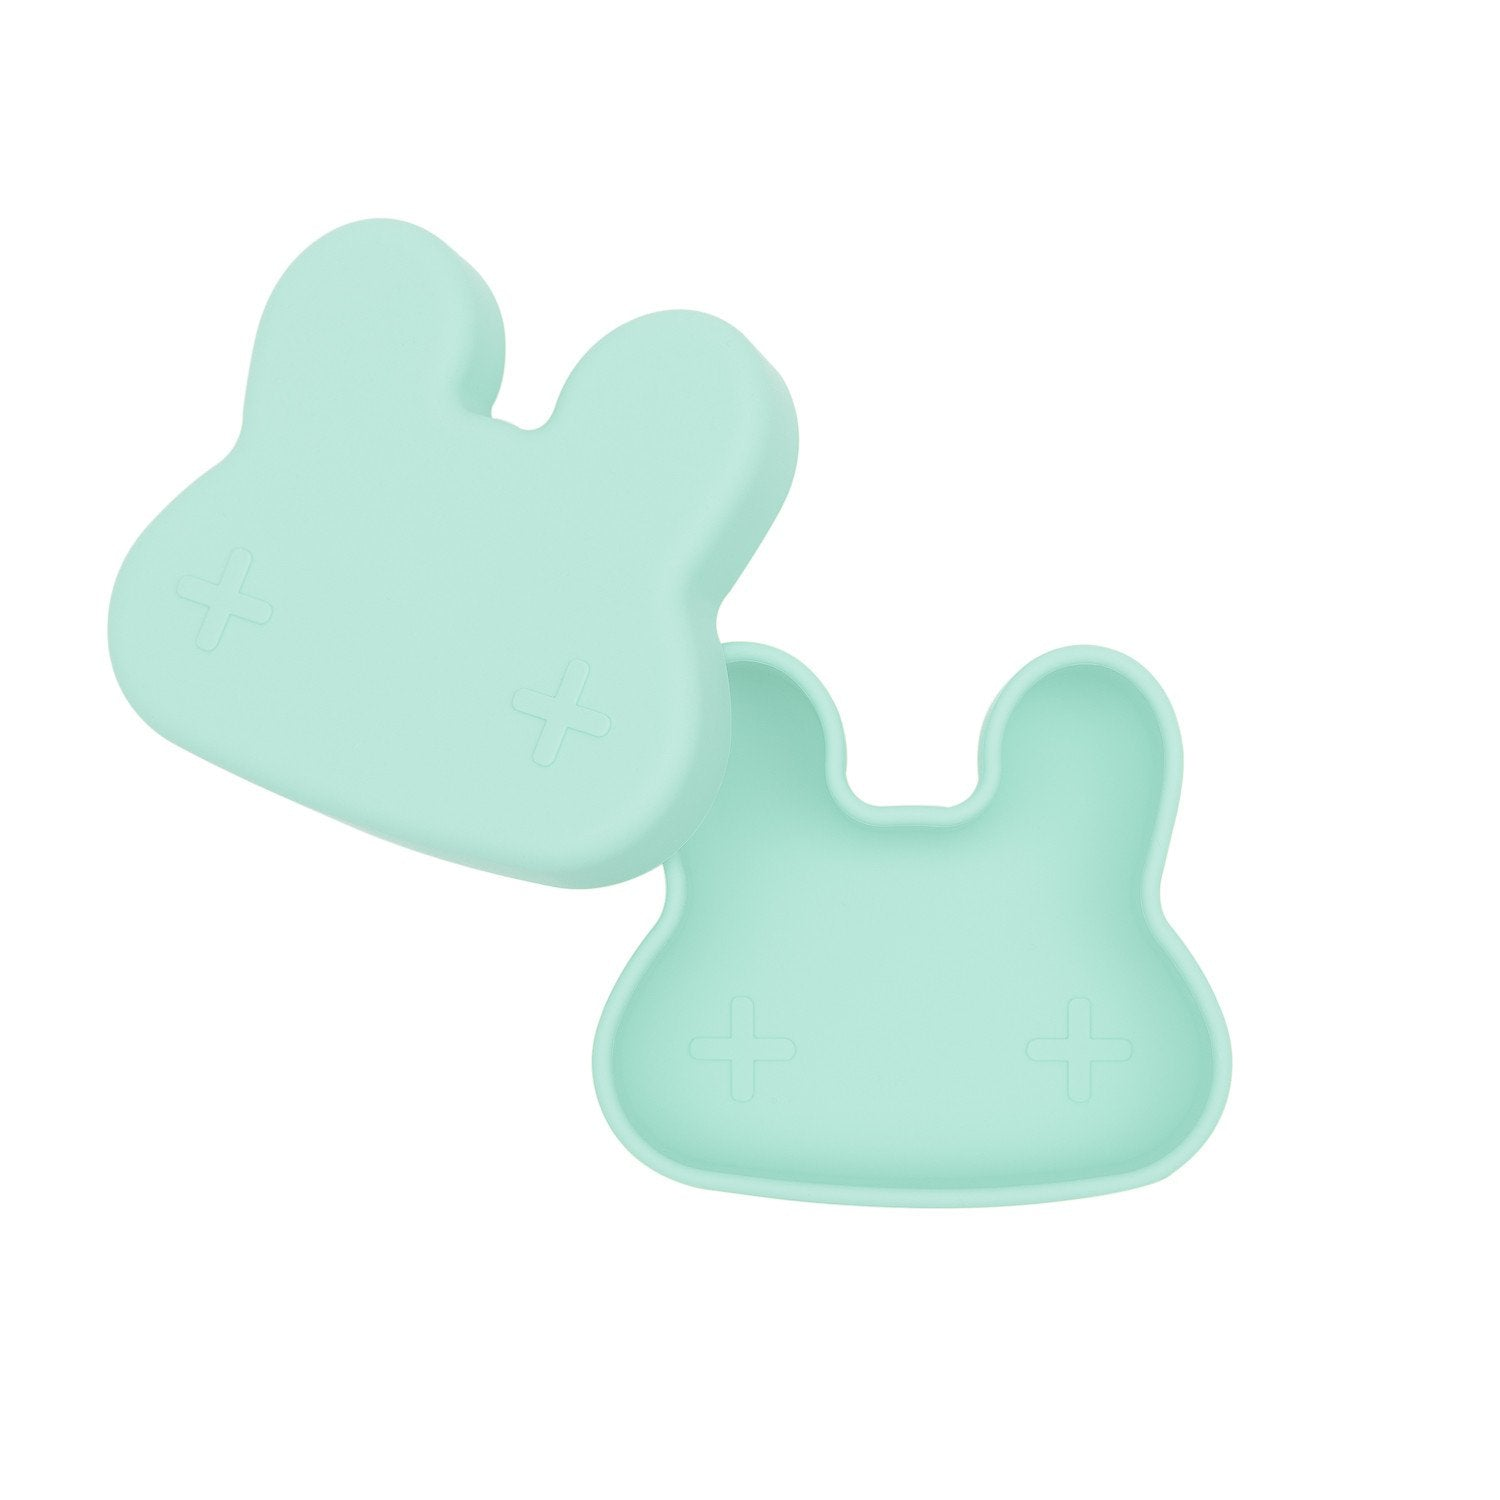 Snackie Bunny Bowl & Plate - Minty Green